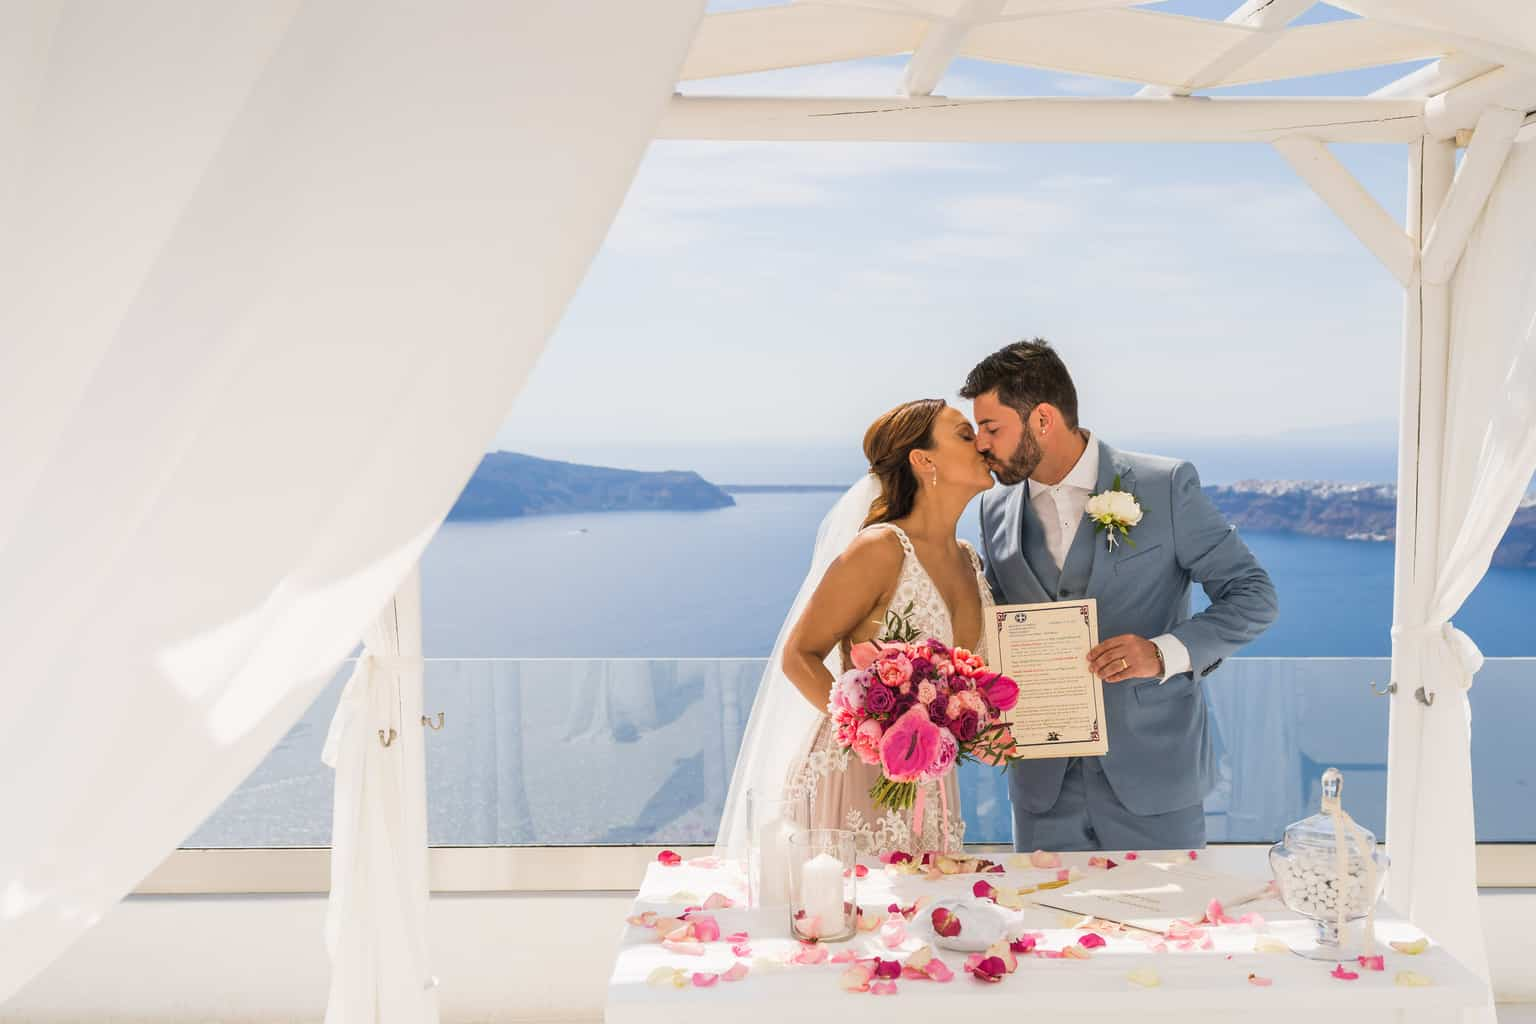 Destination-wedding-grecia-elopment-wedding-fotografia-life-click-studioLFC100of185